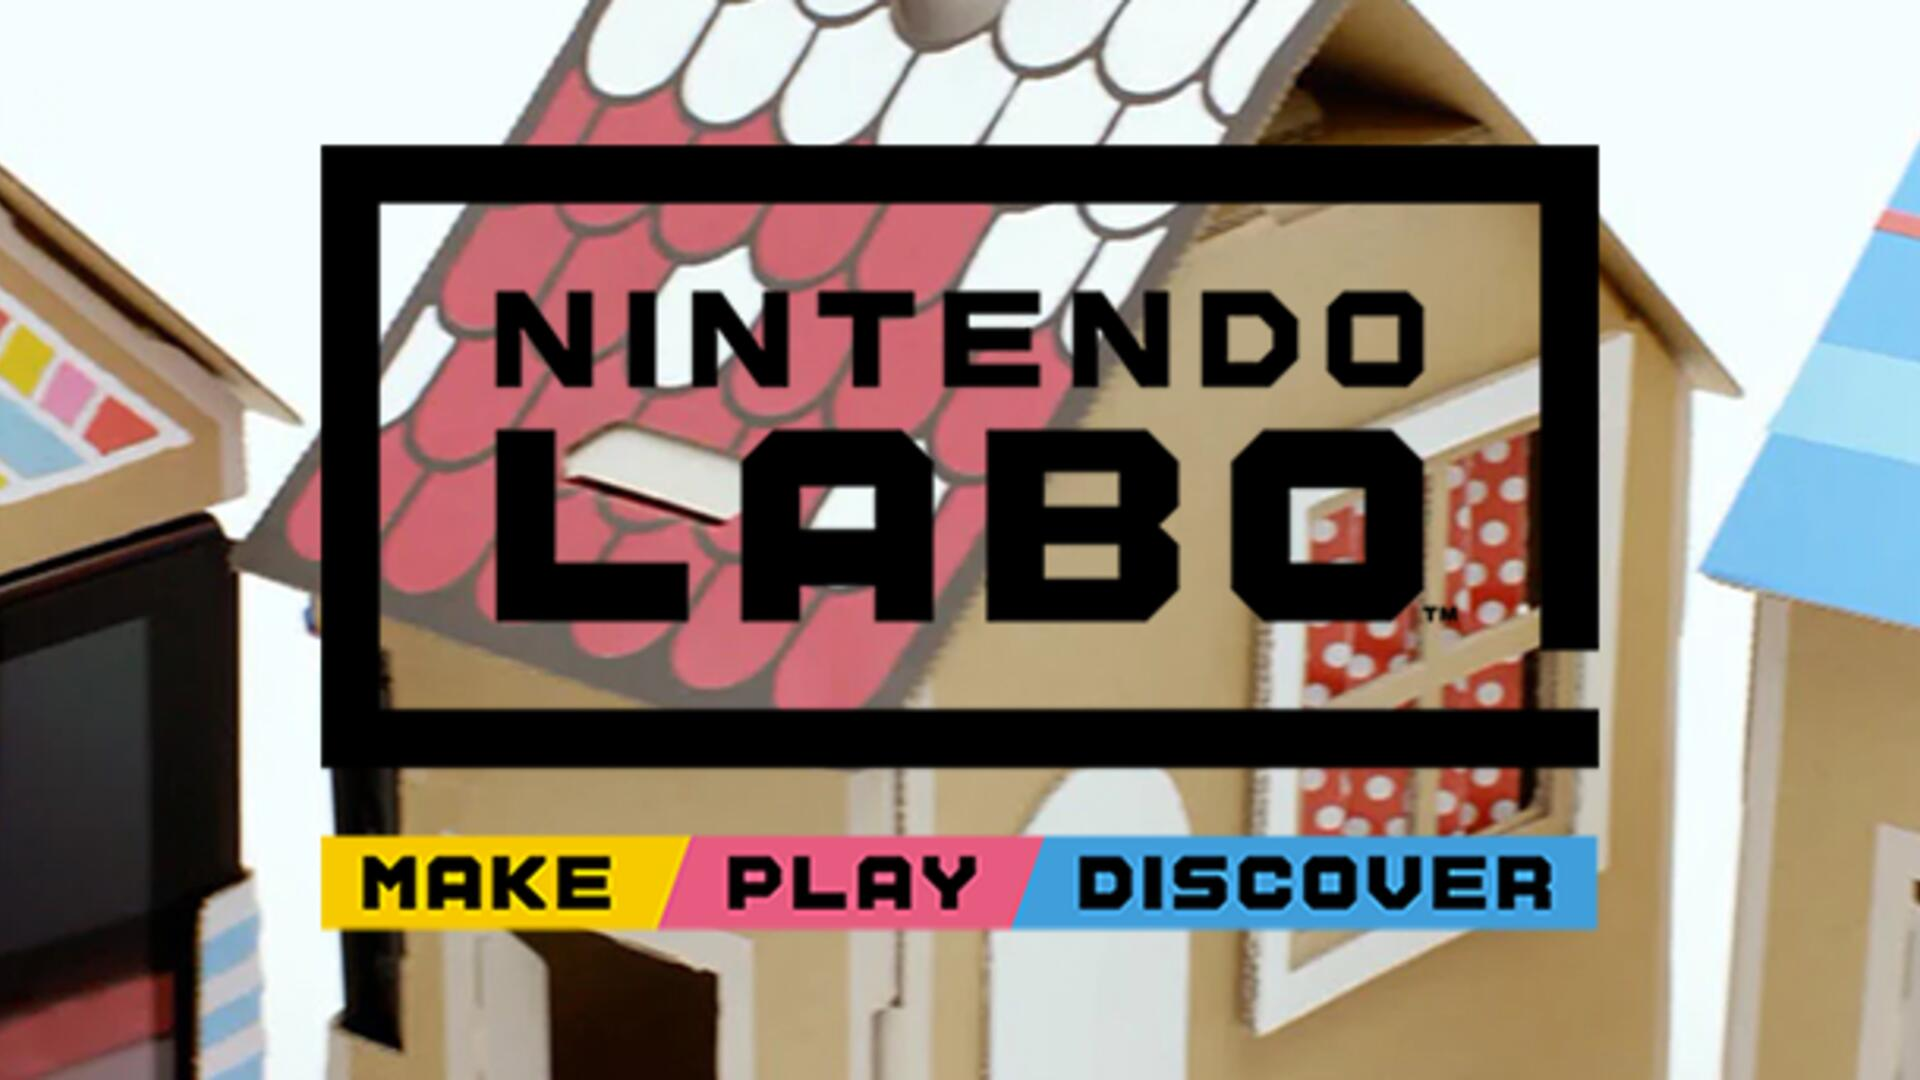 Labo Adds Nearly $1.4 Billion in Value for Nintendo